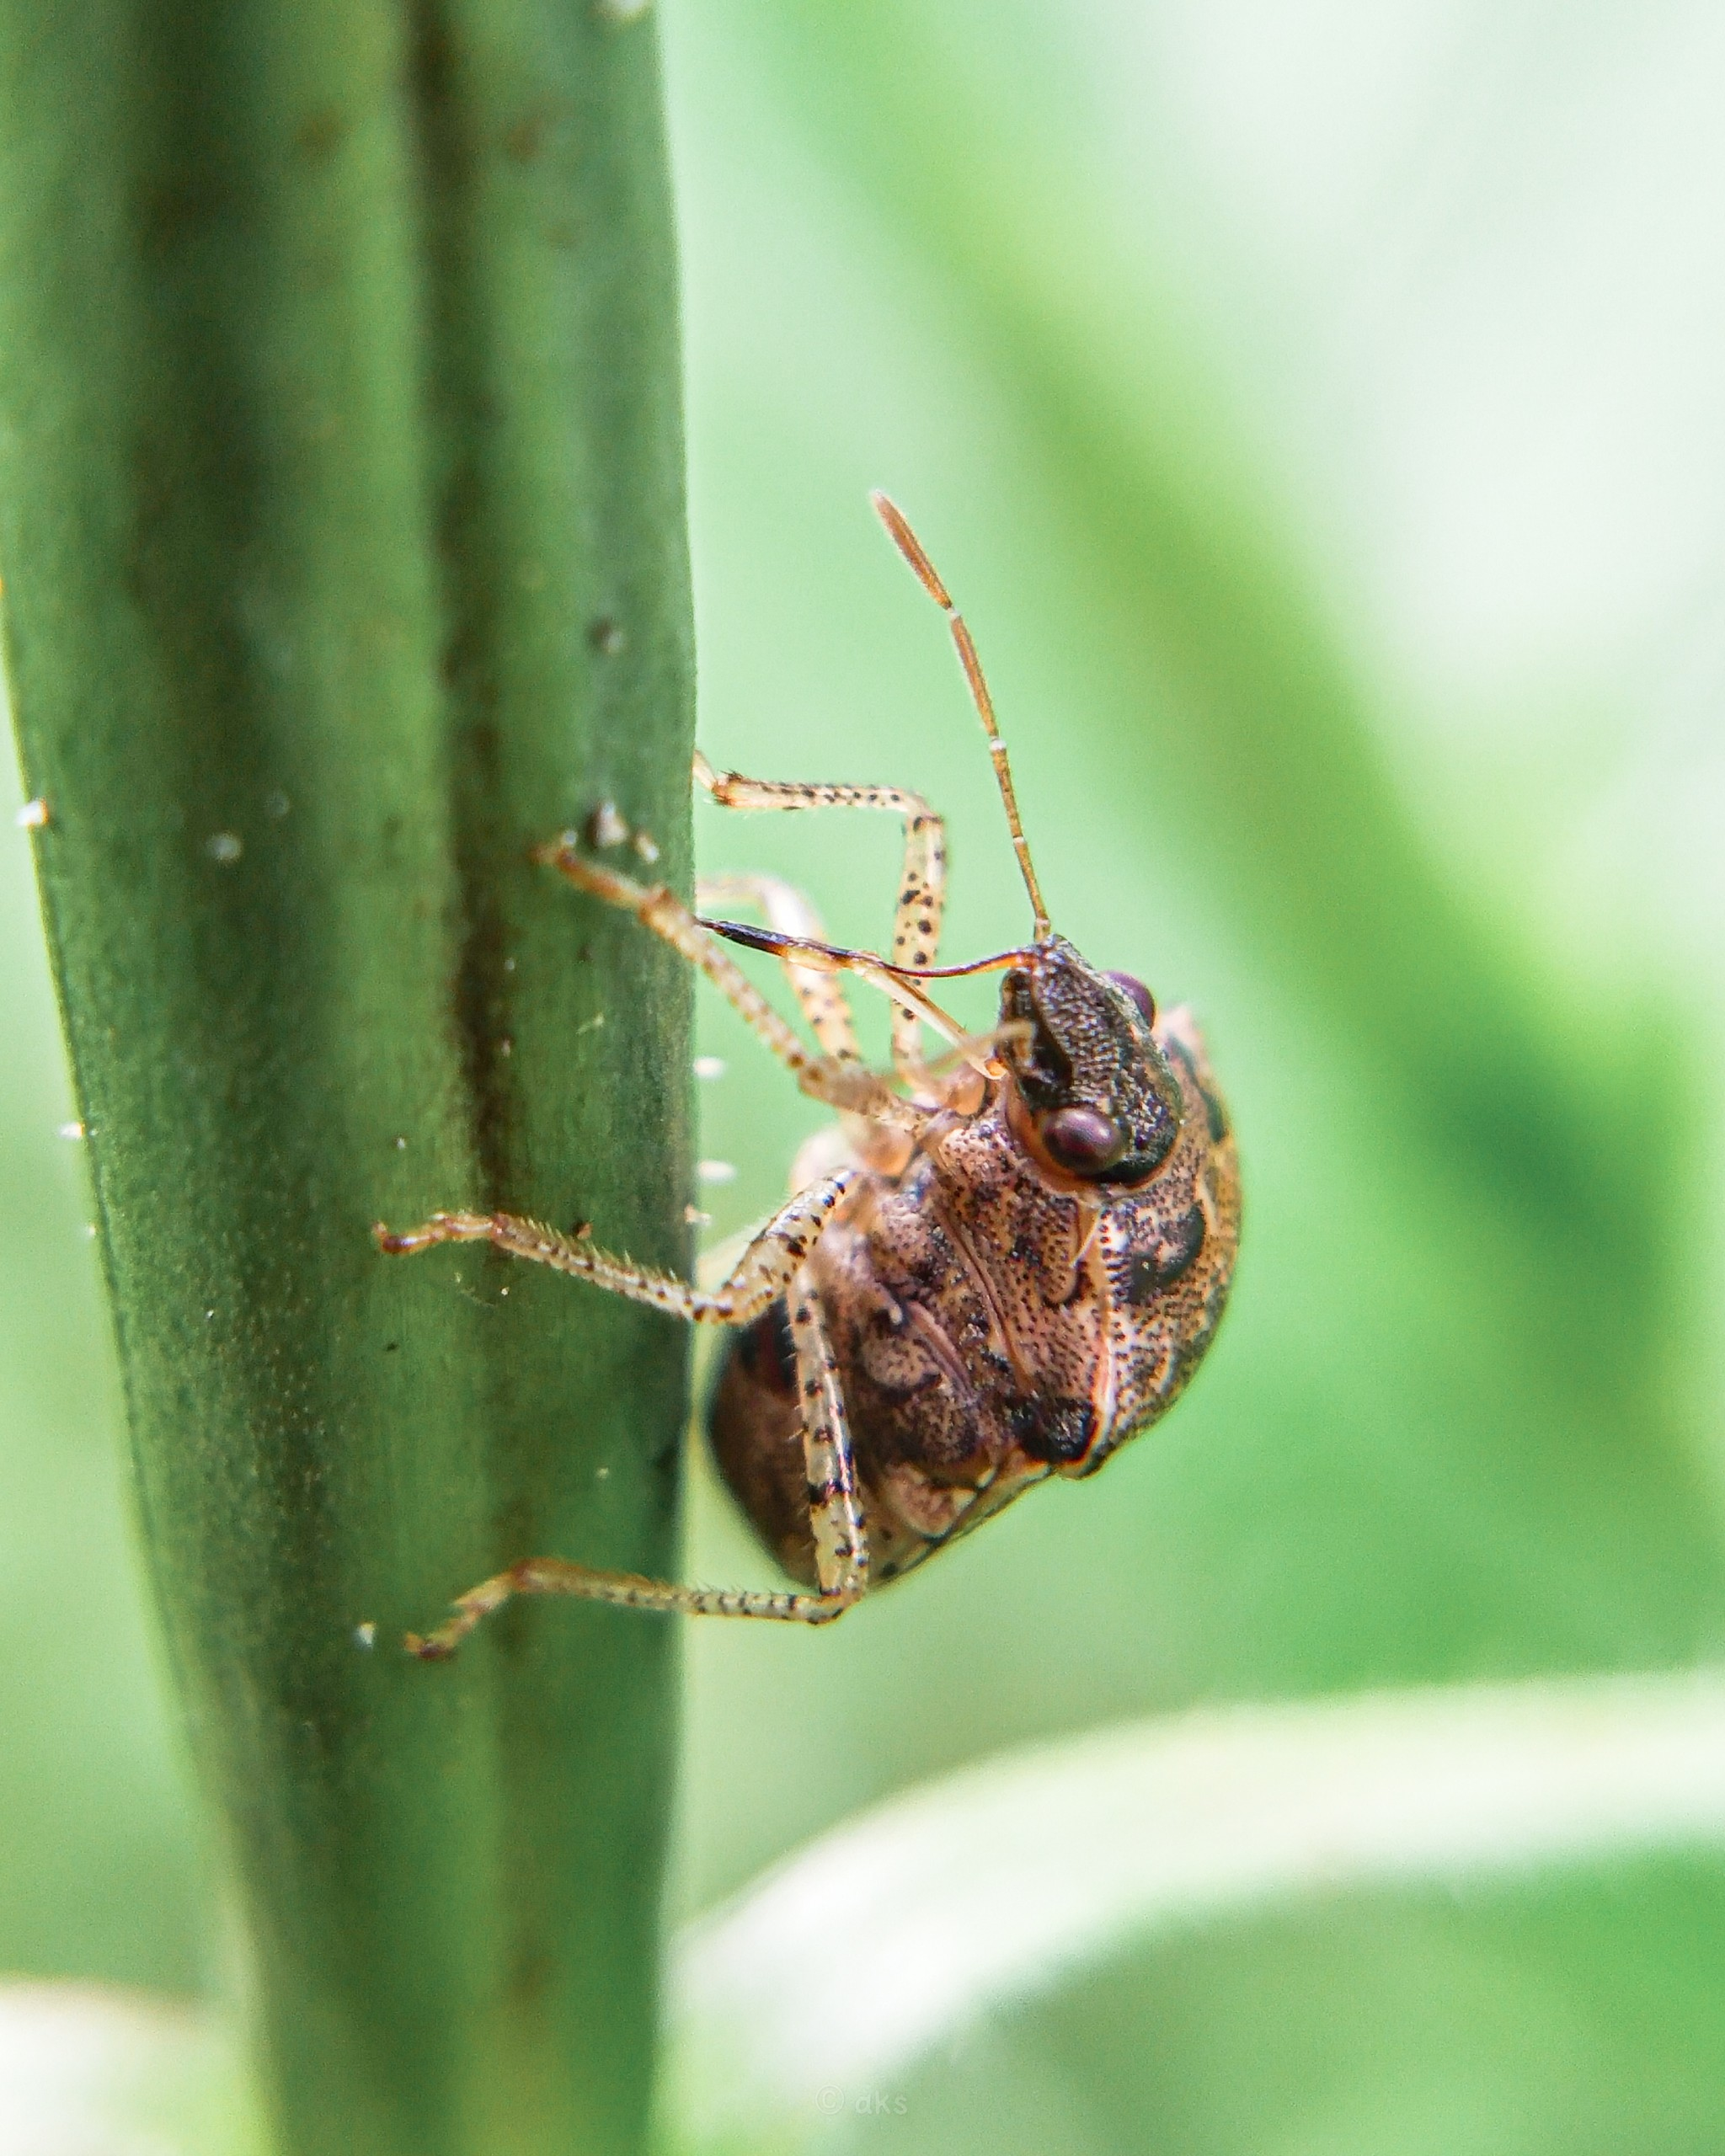 Small wild insect on focus